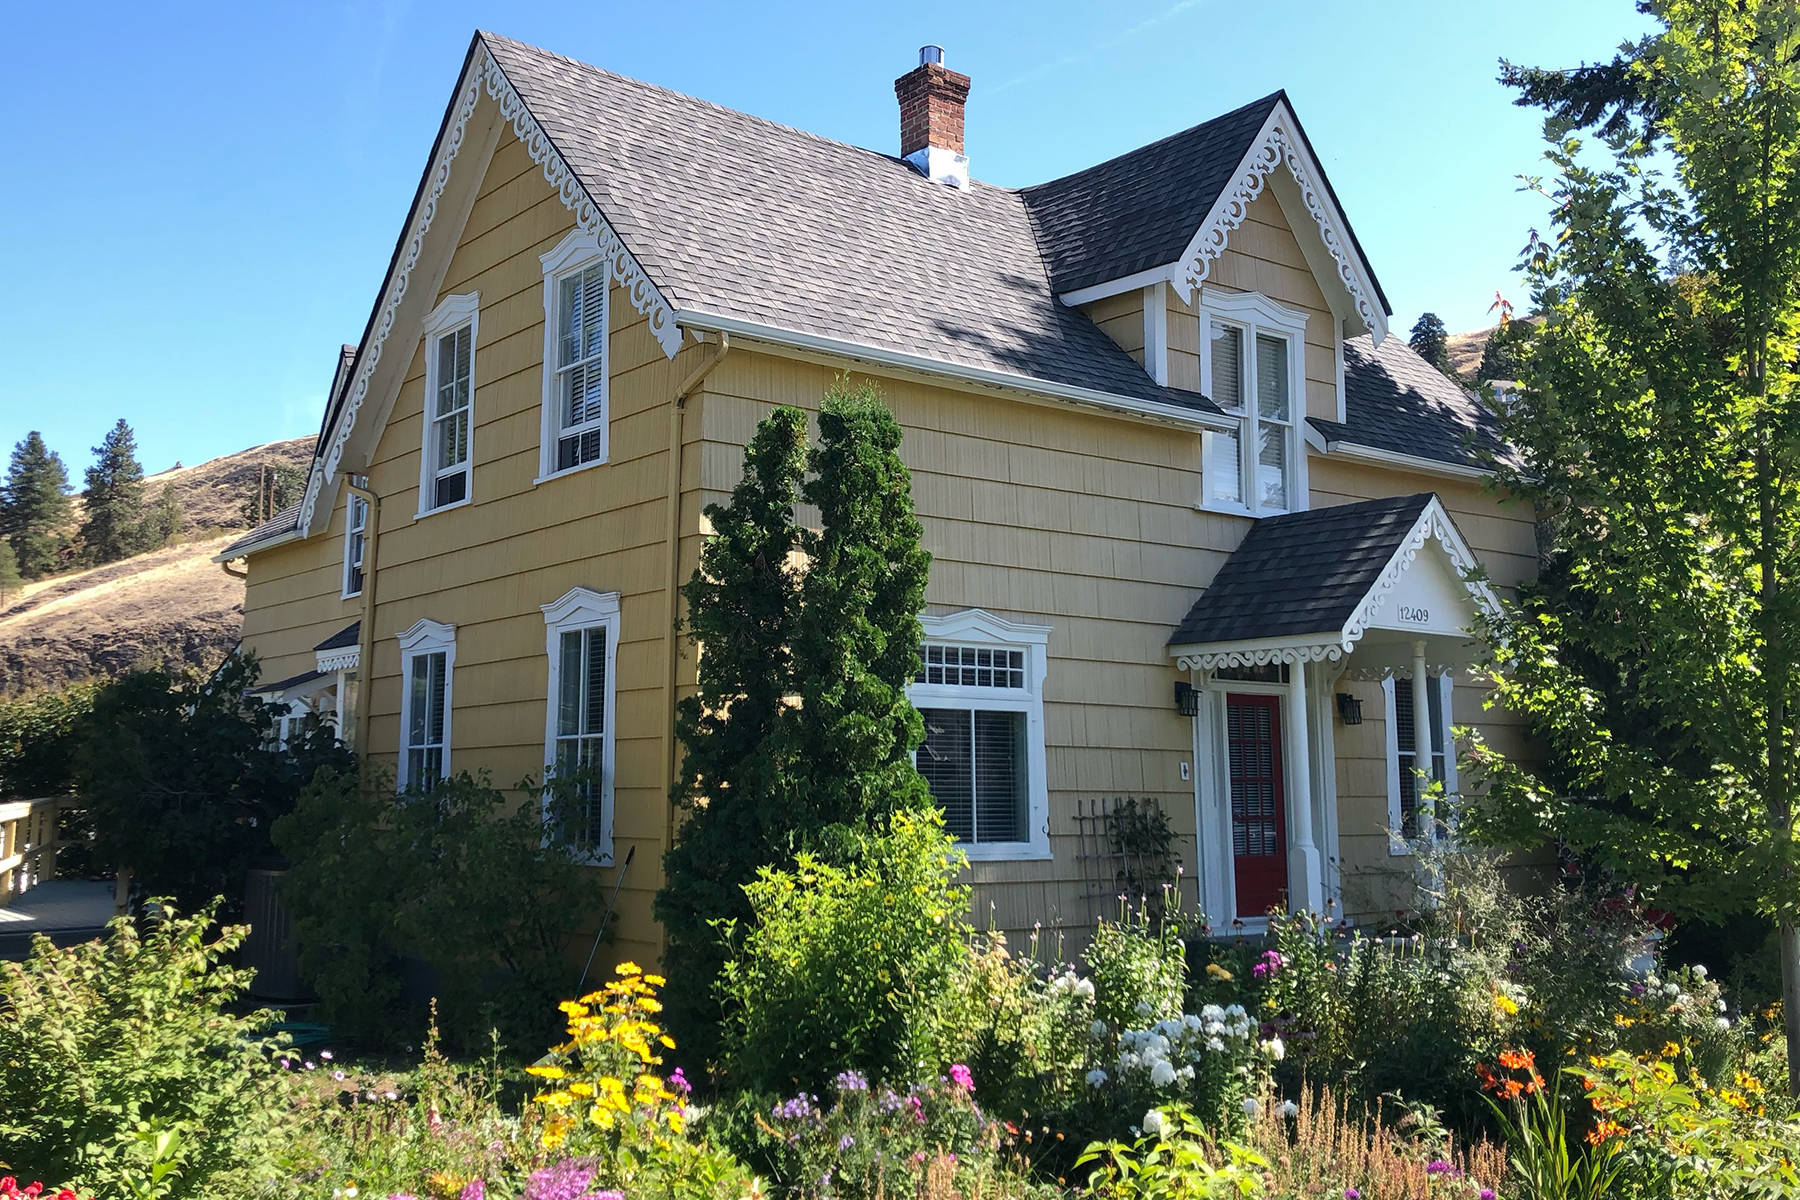 The Barclay House on Victoria Road South in Summerland is the oldest continuously inhabited home in Summerland. Whether your house is old or new, large or small, it represents a special place. (Black Press file photo)